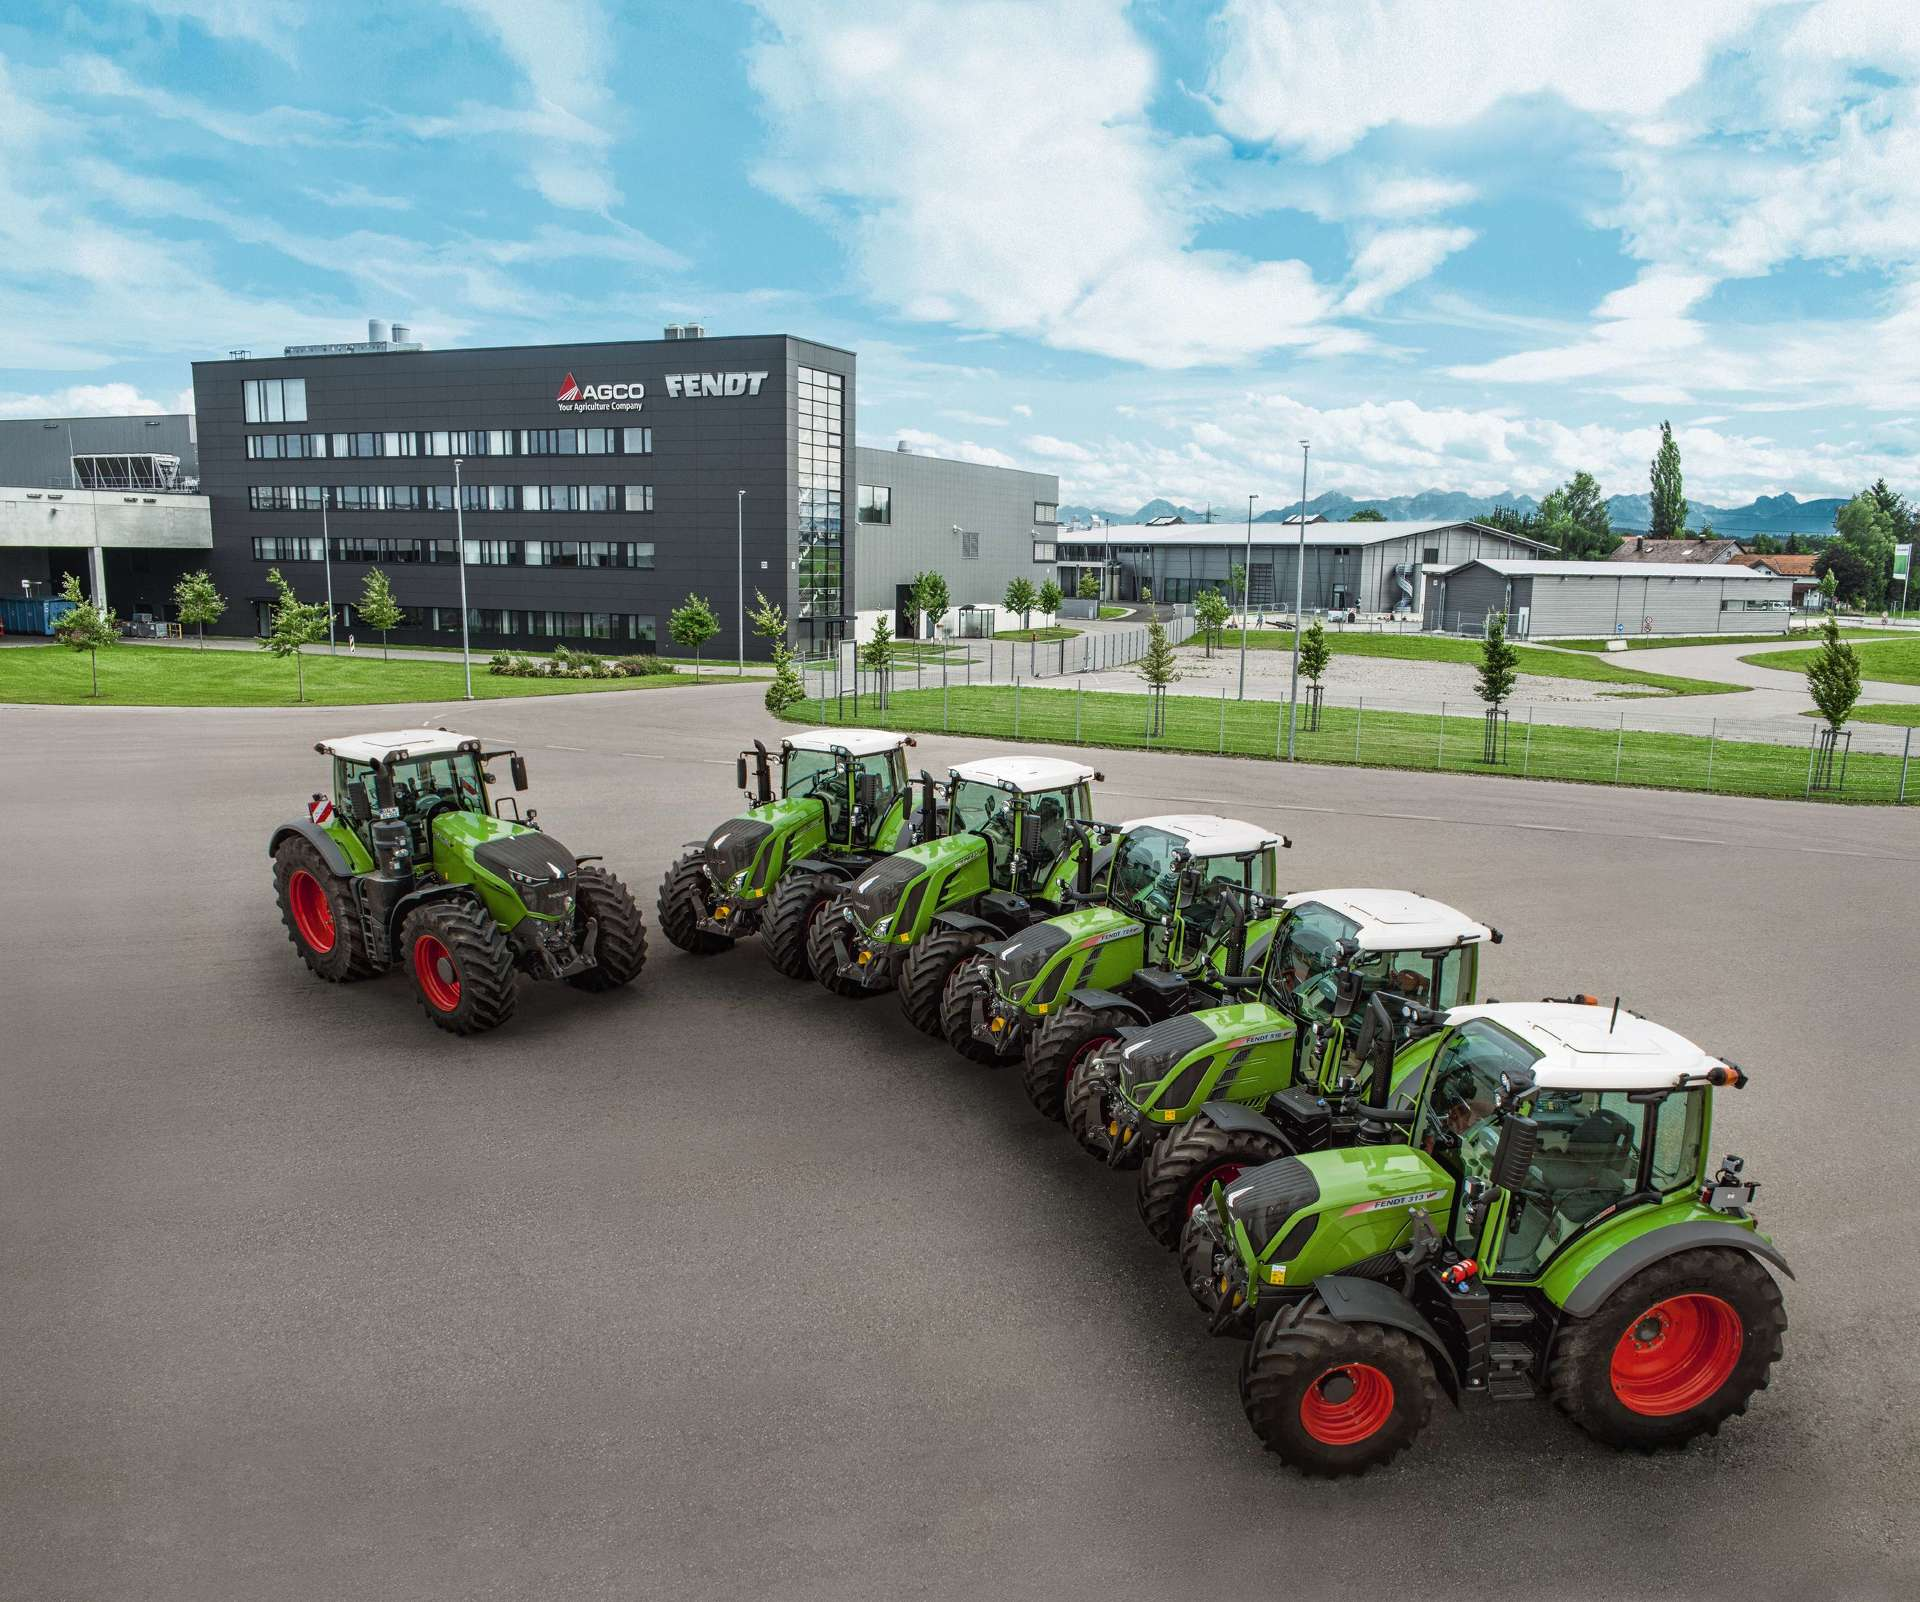 AGCO/Fendt continues to grow - Fendt